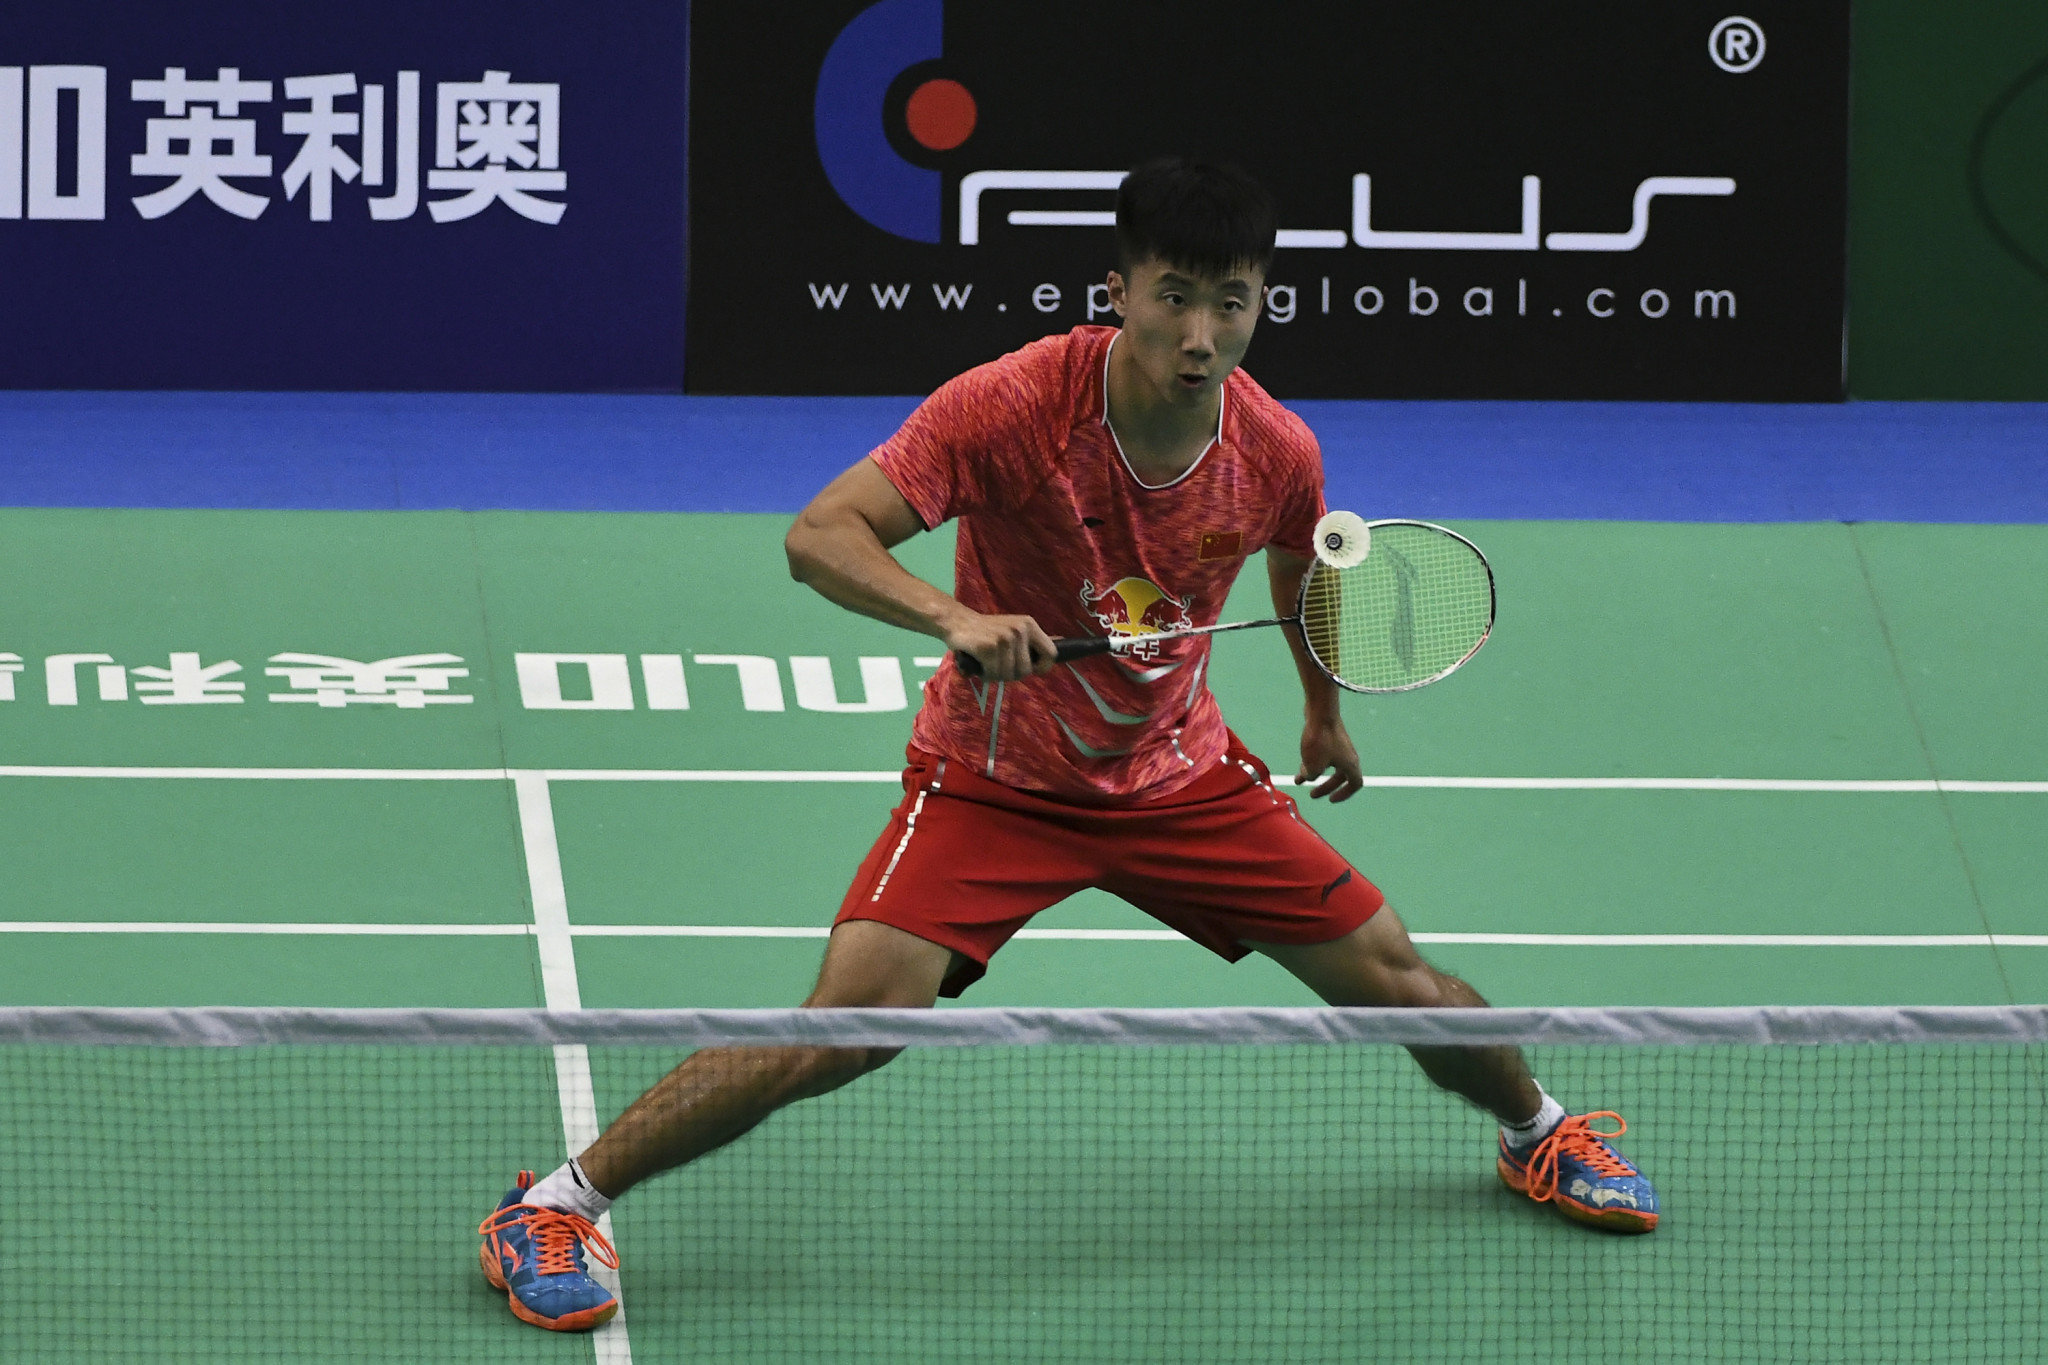 China's Lu Guangzu is through to the semi-finals of the men's singles event ©Getty Images